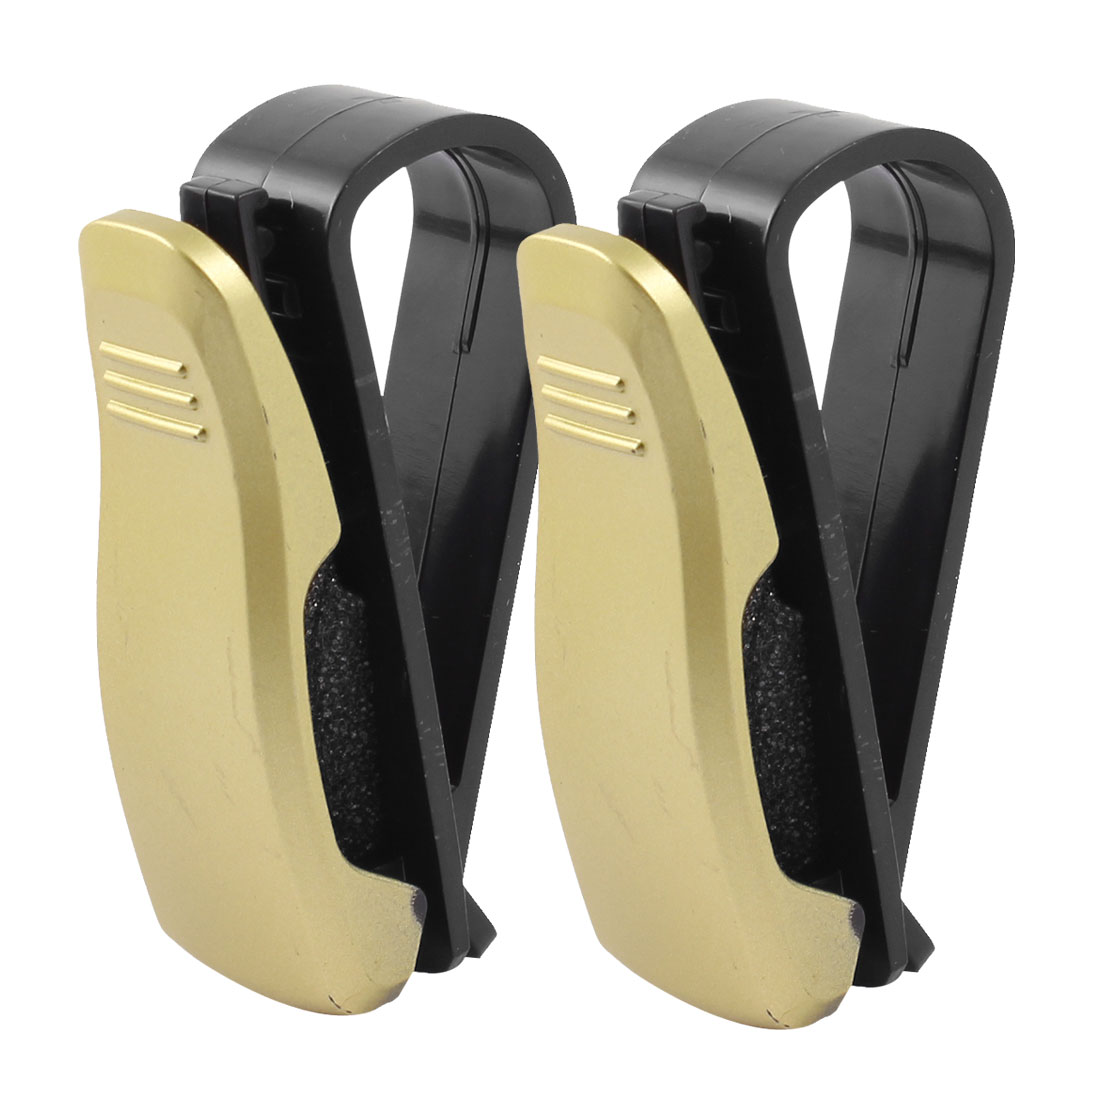 Car Interior Spring Loaded Plastic Eyeglasses Clip Black Gold Tone 2Pcs